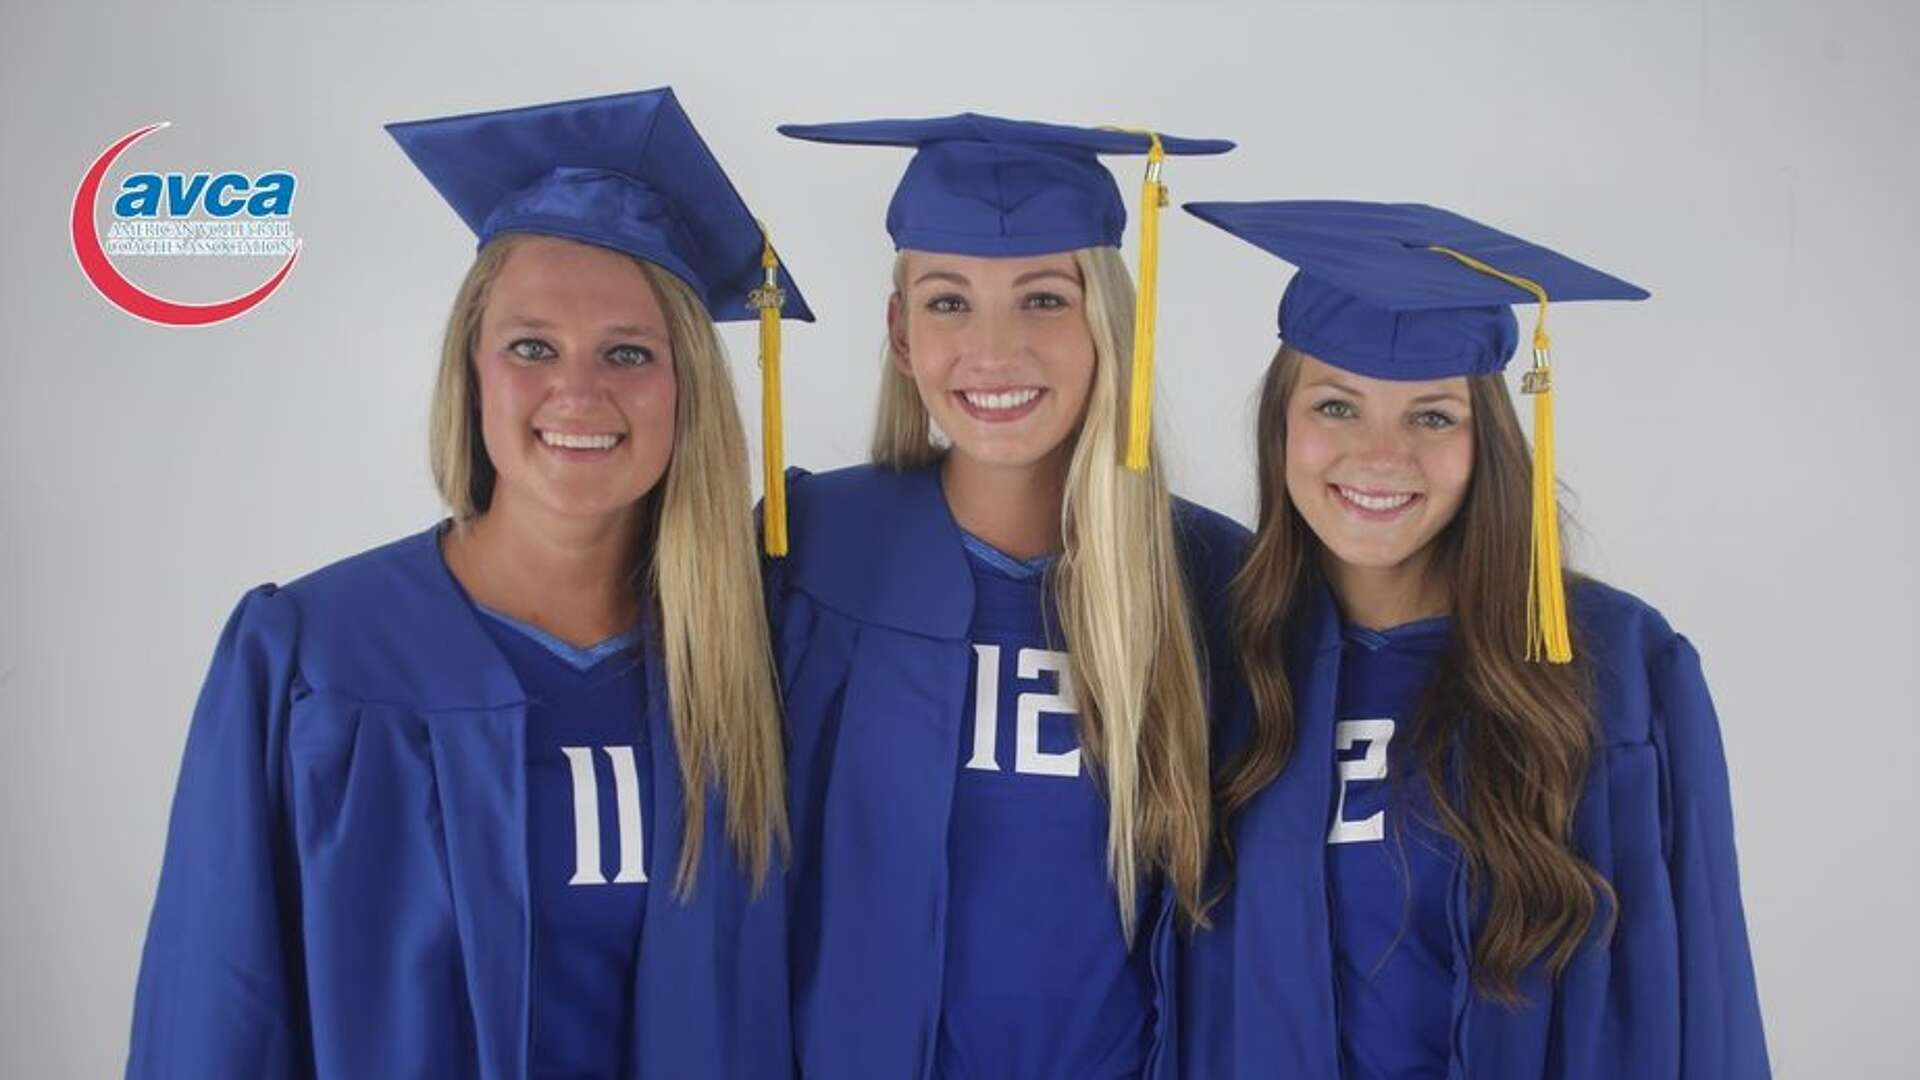 Volleyball players pose in graduation regalia.